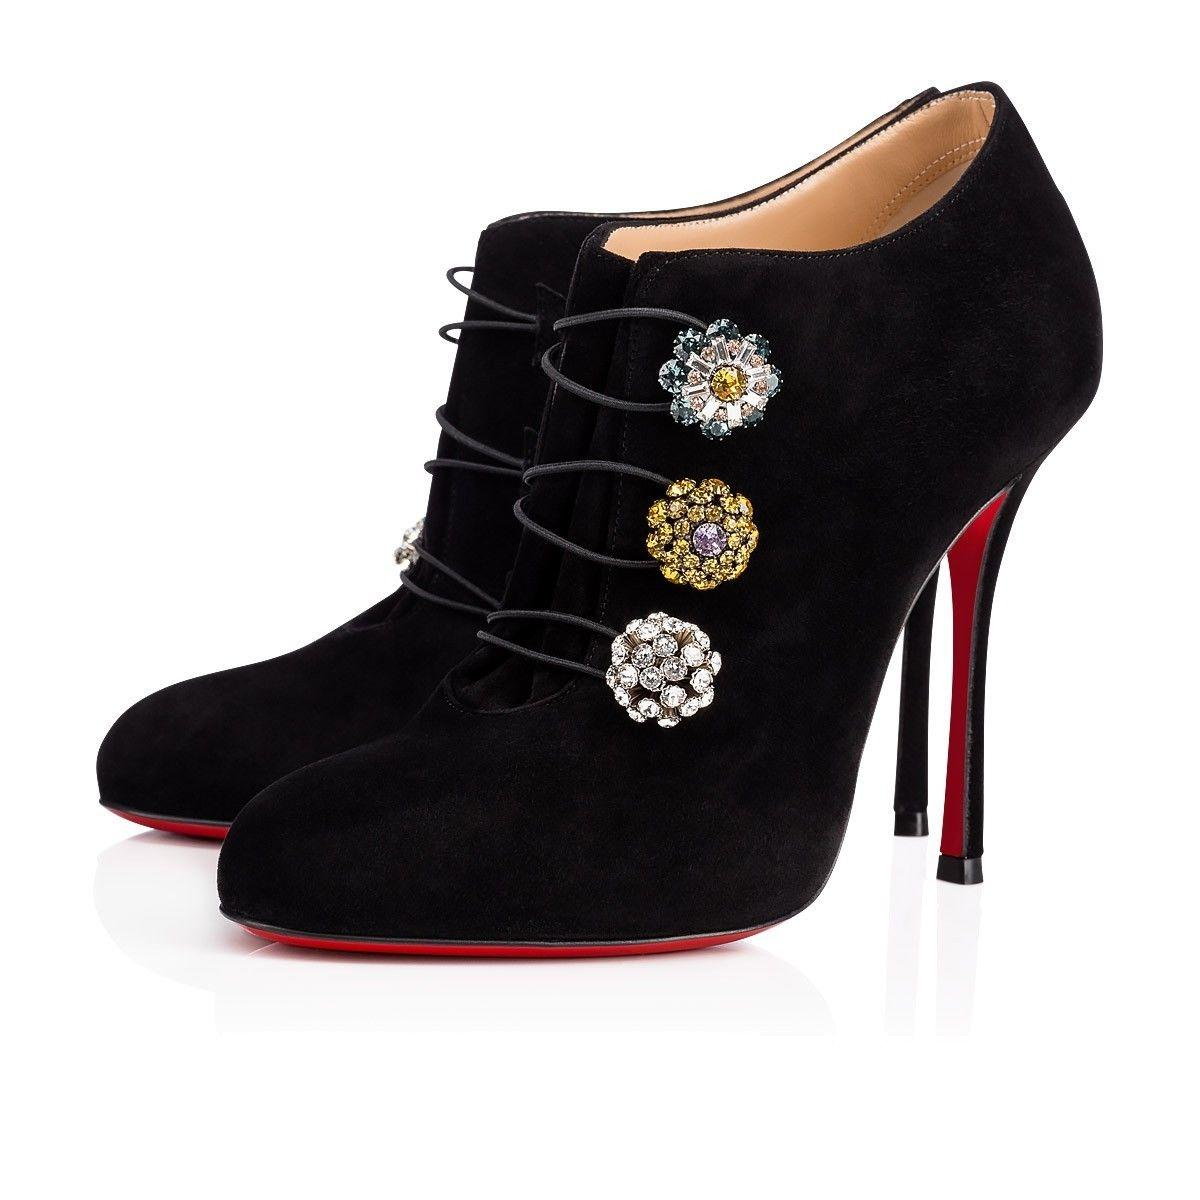 free shipping release dates Christian Louboutin Bootoni 100 ... discount order Cheapest ccf1HDB